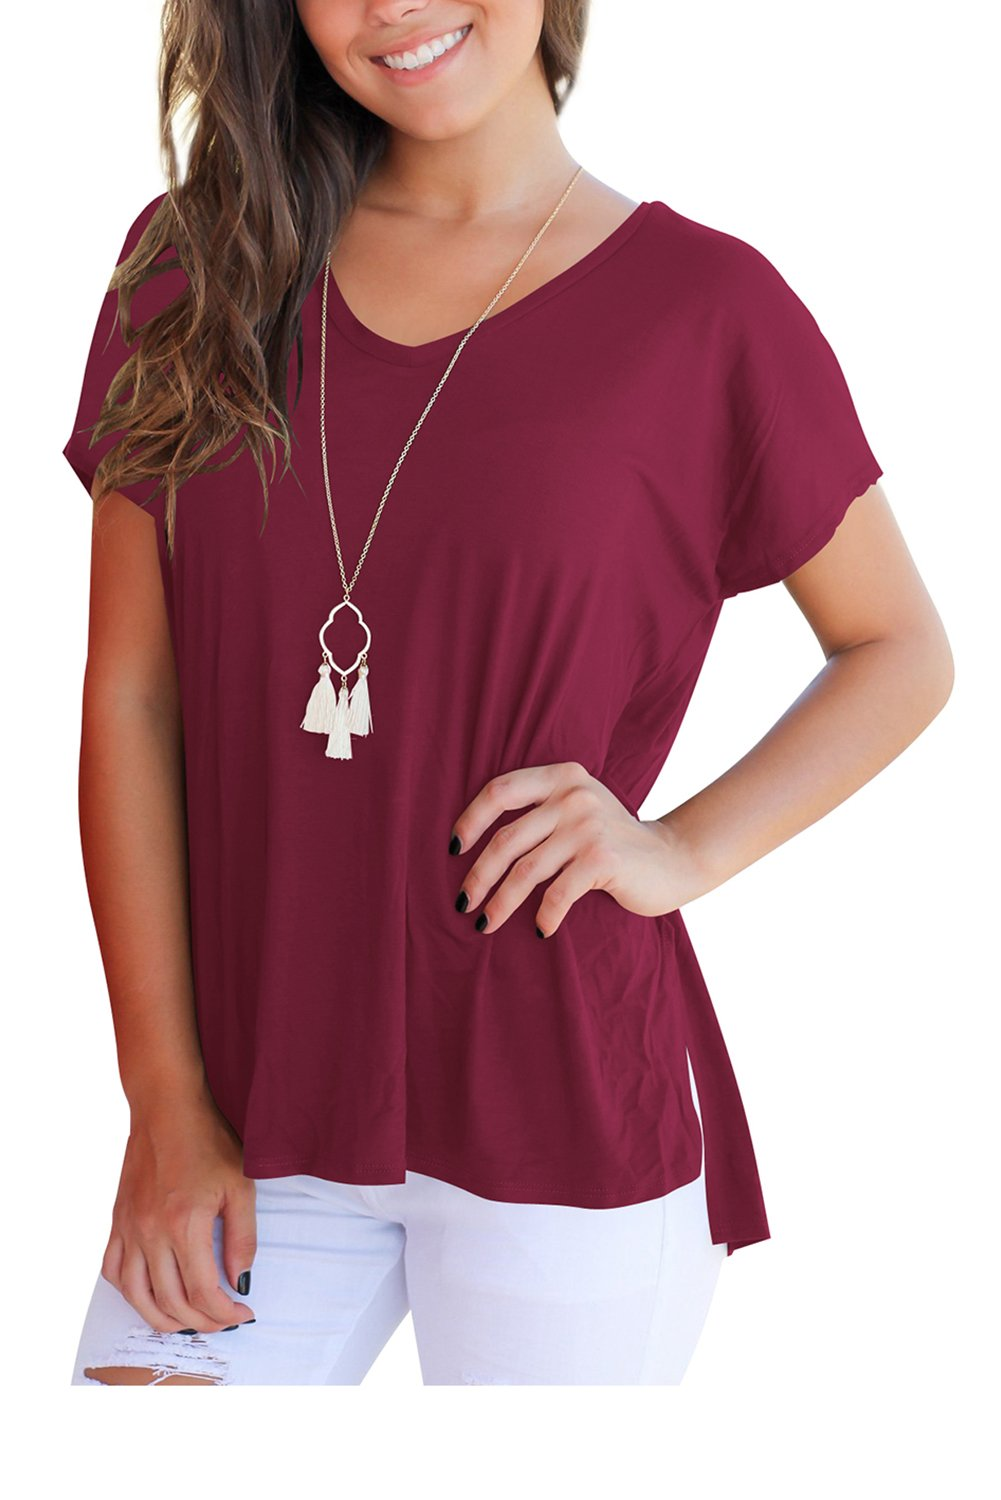 FAVALIVE Women Tees and Tops Short Sleeve V Neck Tunic T Shirts Plain Wind Red XL by FAVALIVE (Image #2)